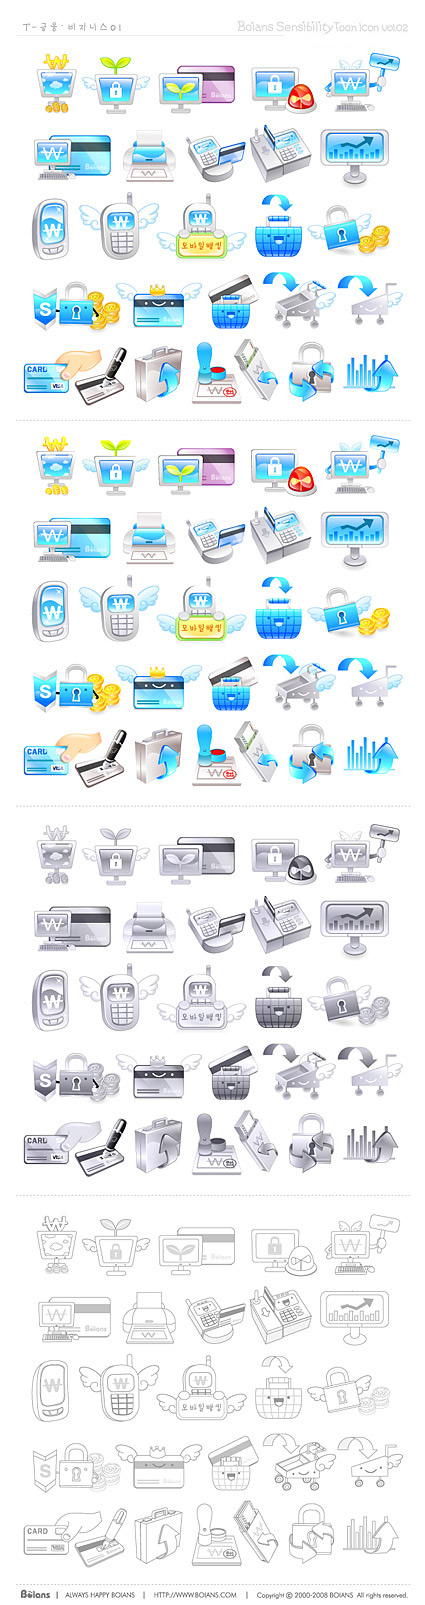 Financial topic icons